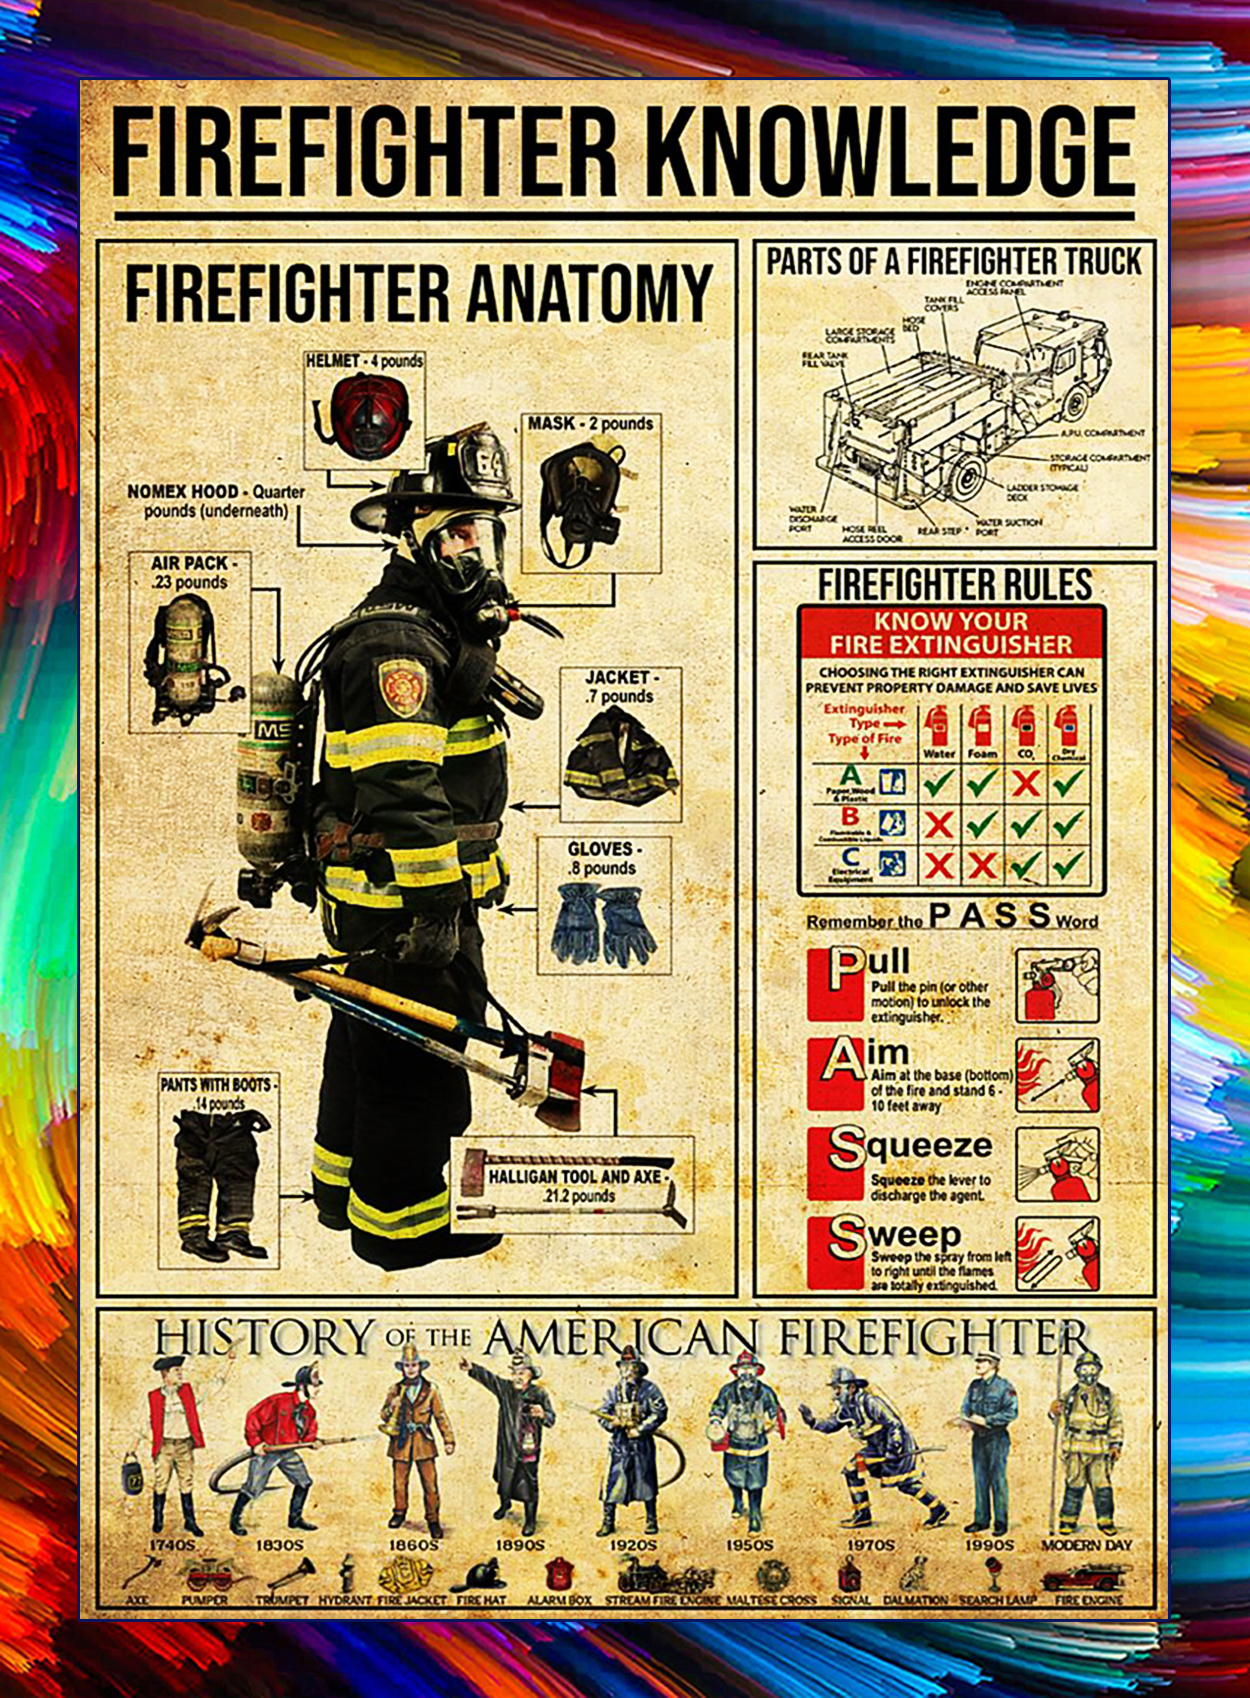 Firefighter knowledge poster - A3